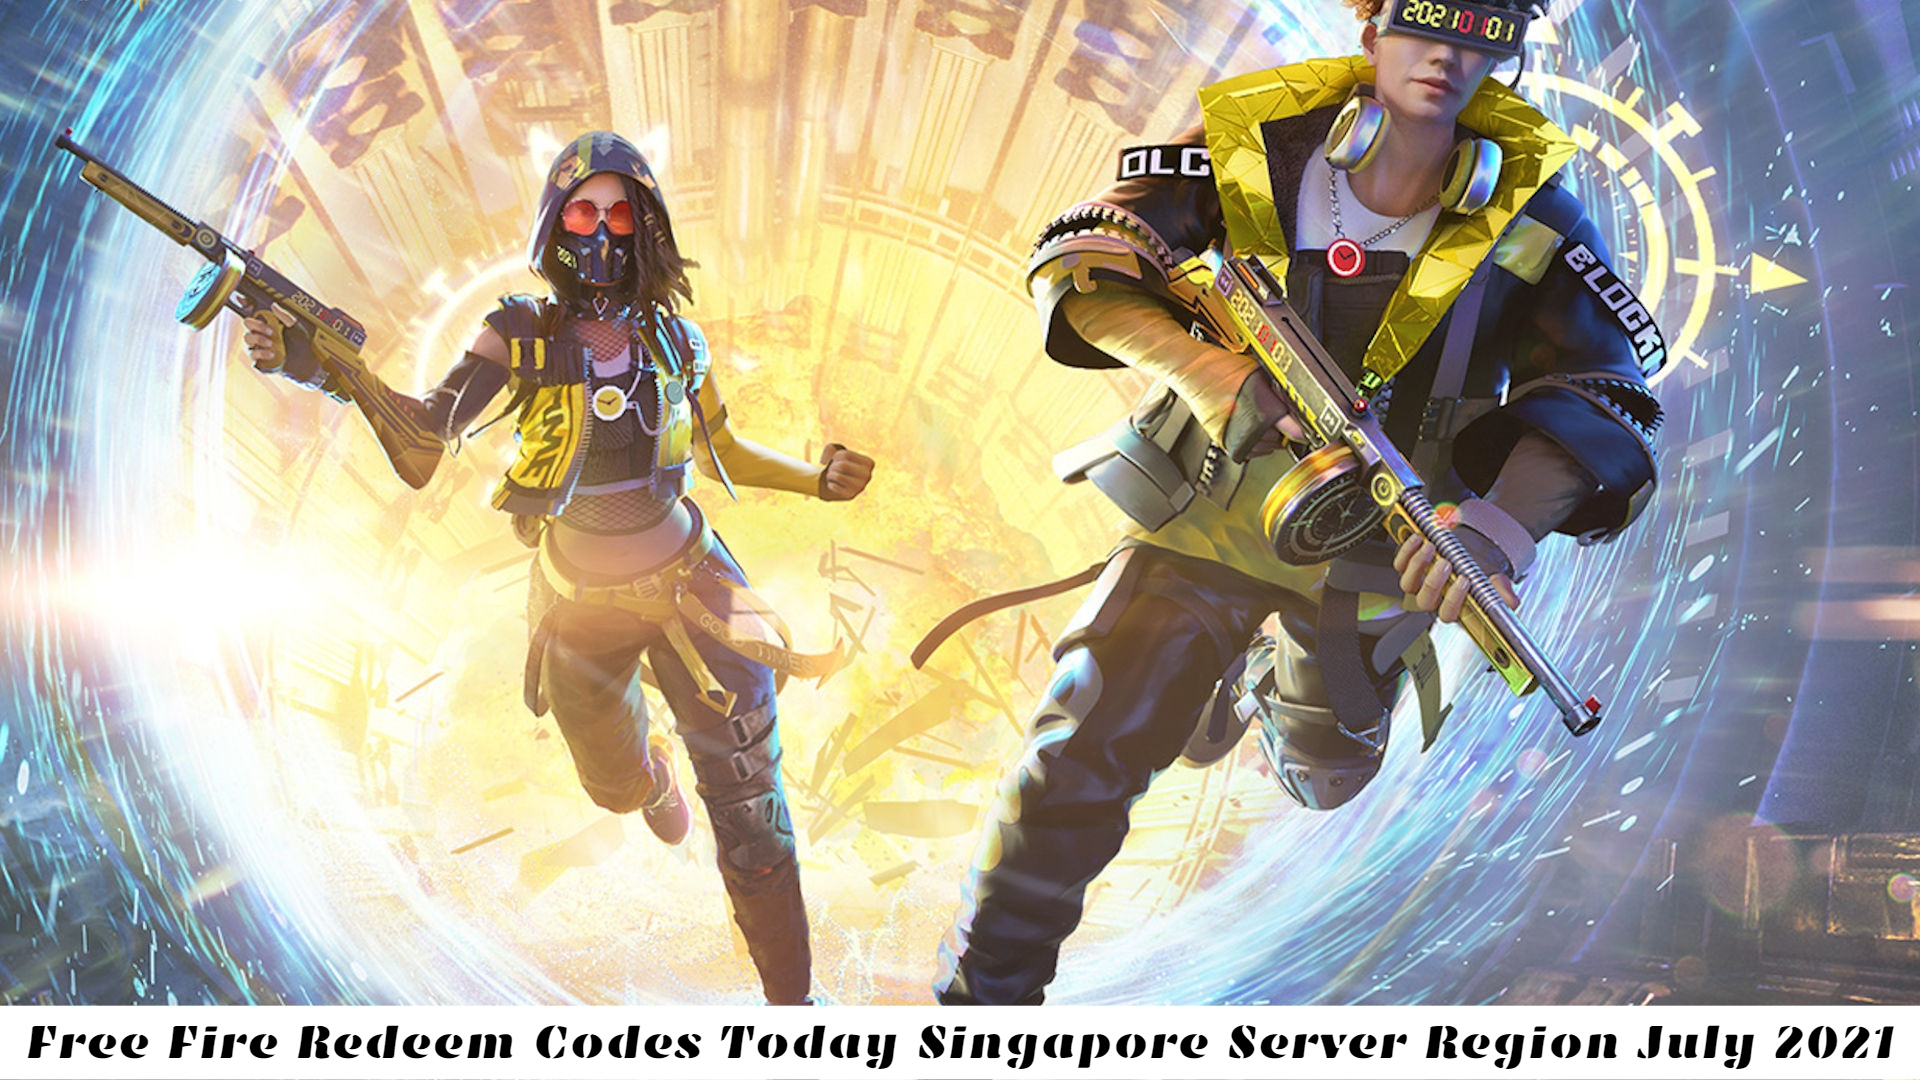 Free Fire Redeem Codes Today Singapore Server Region 25 July 2021